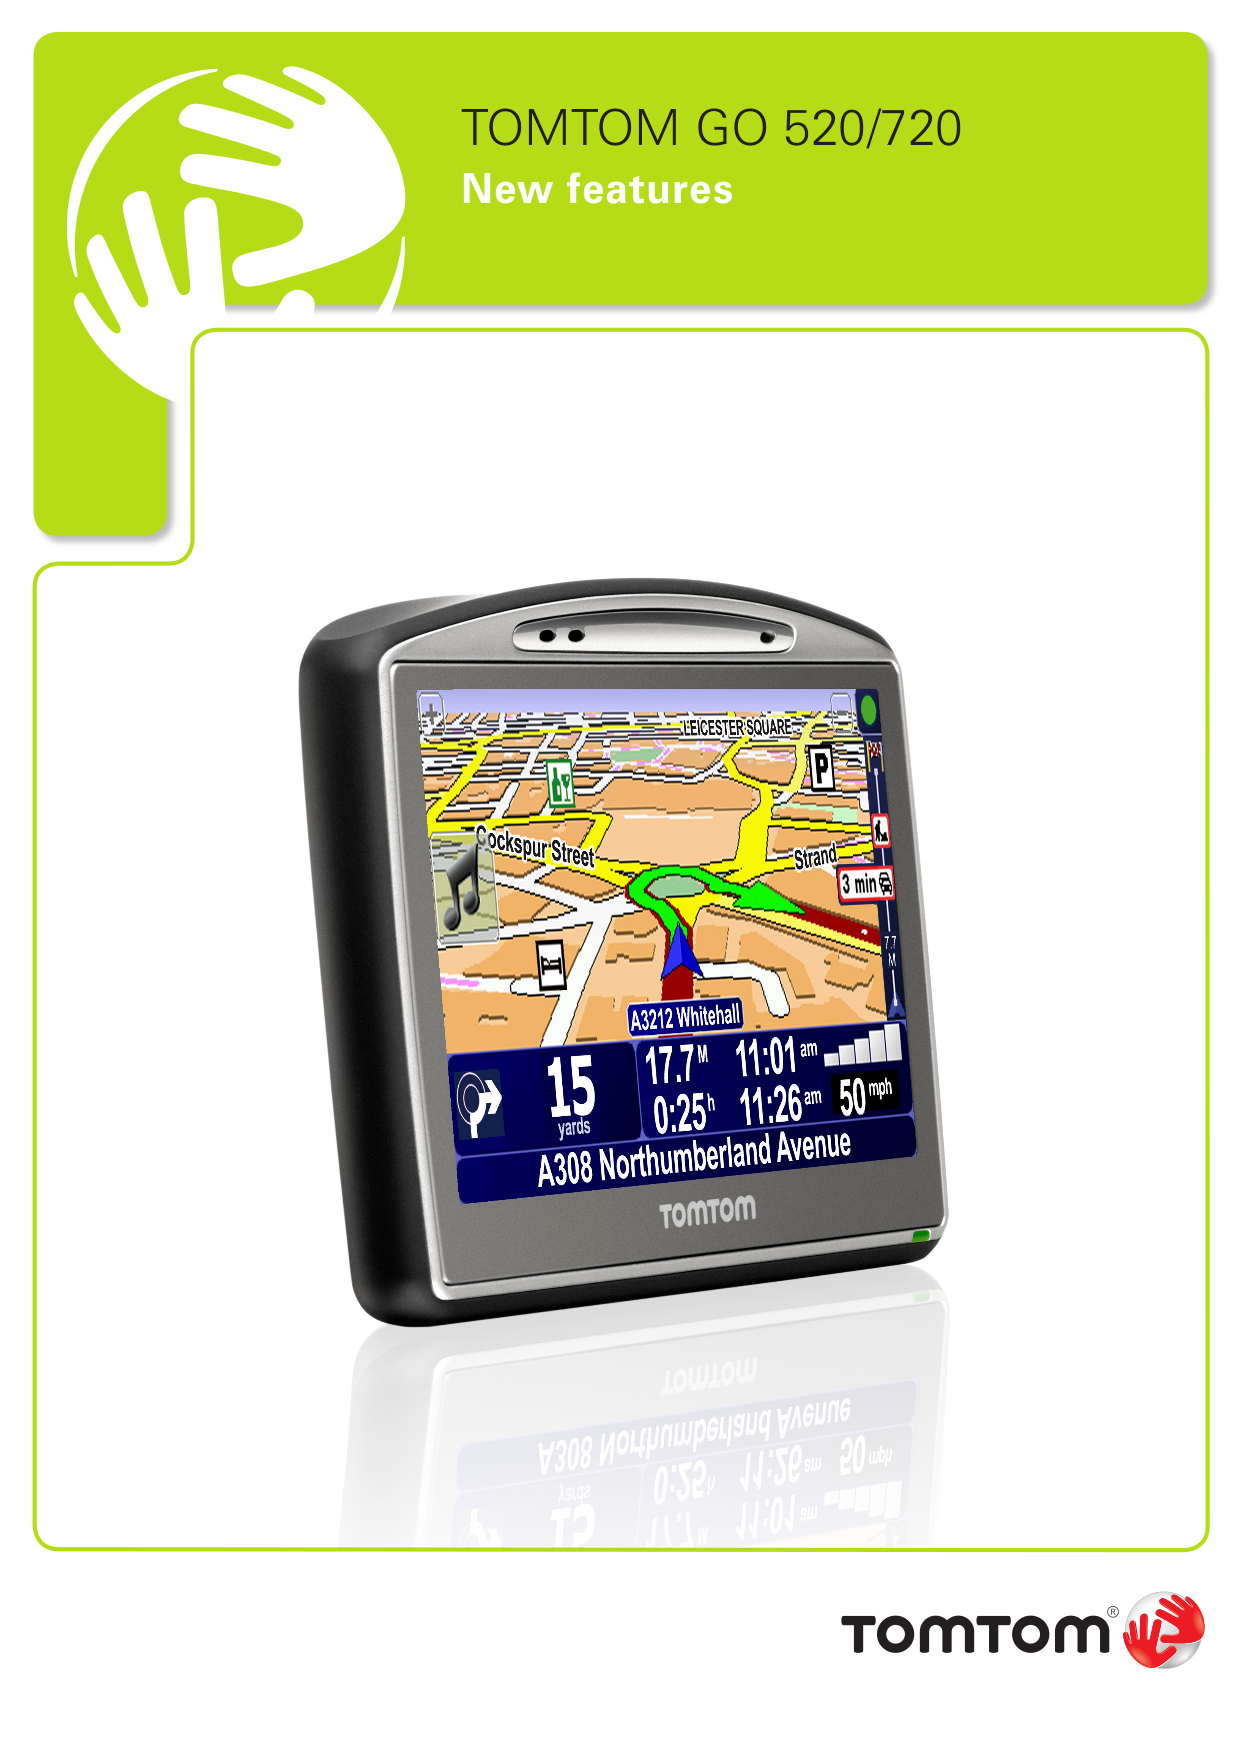 tomtom go 520 manual download